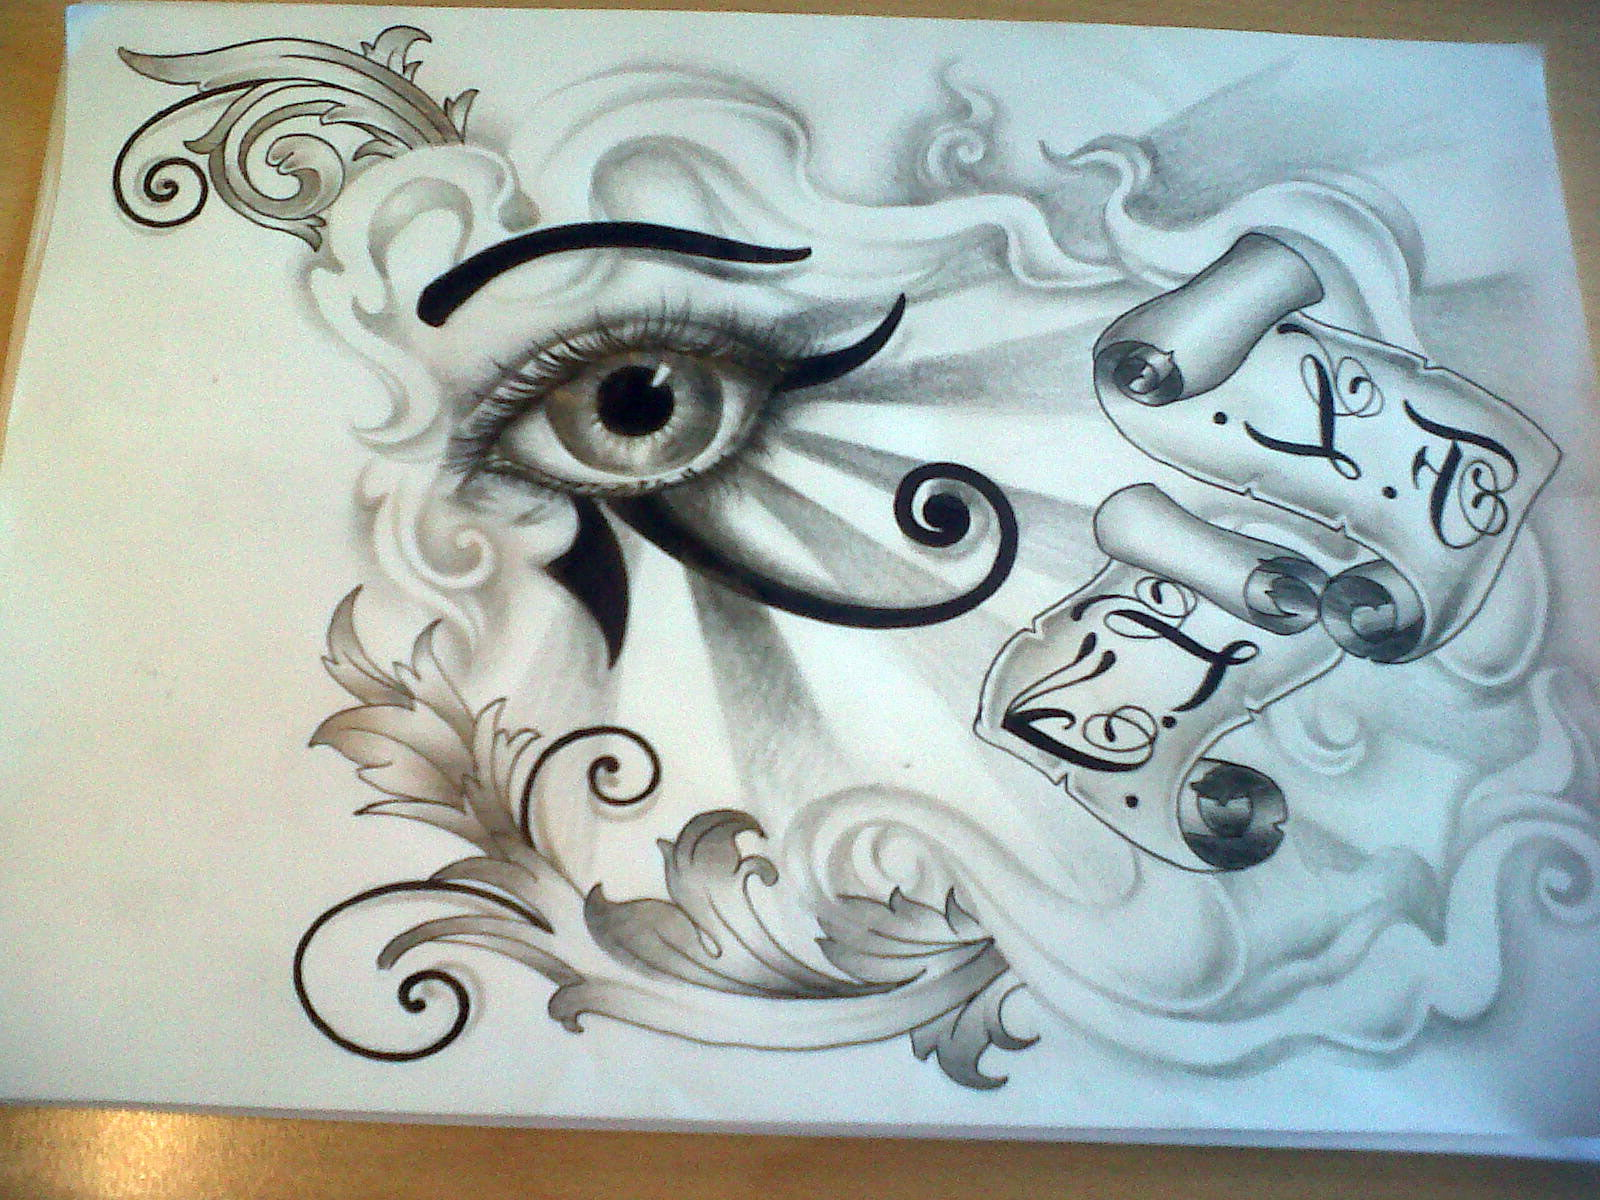 eye of horus tattoo designs cool tattoos bonbaden. Black Bedroom Furniture Sets. Home Design Ideas